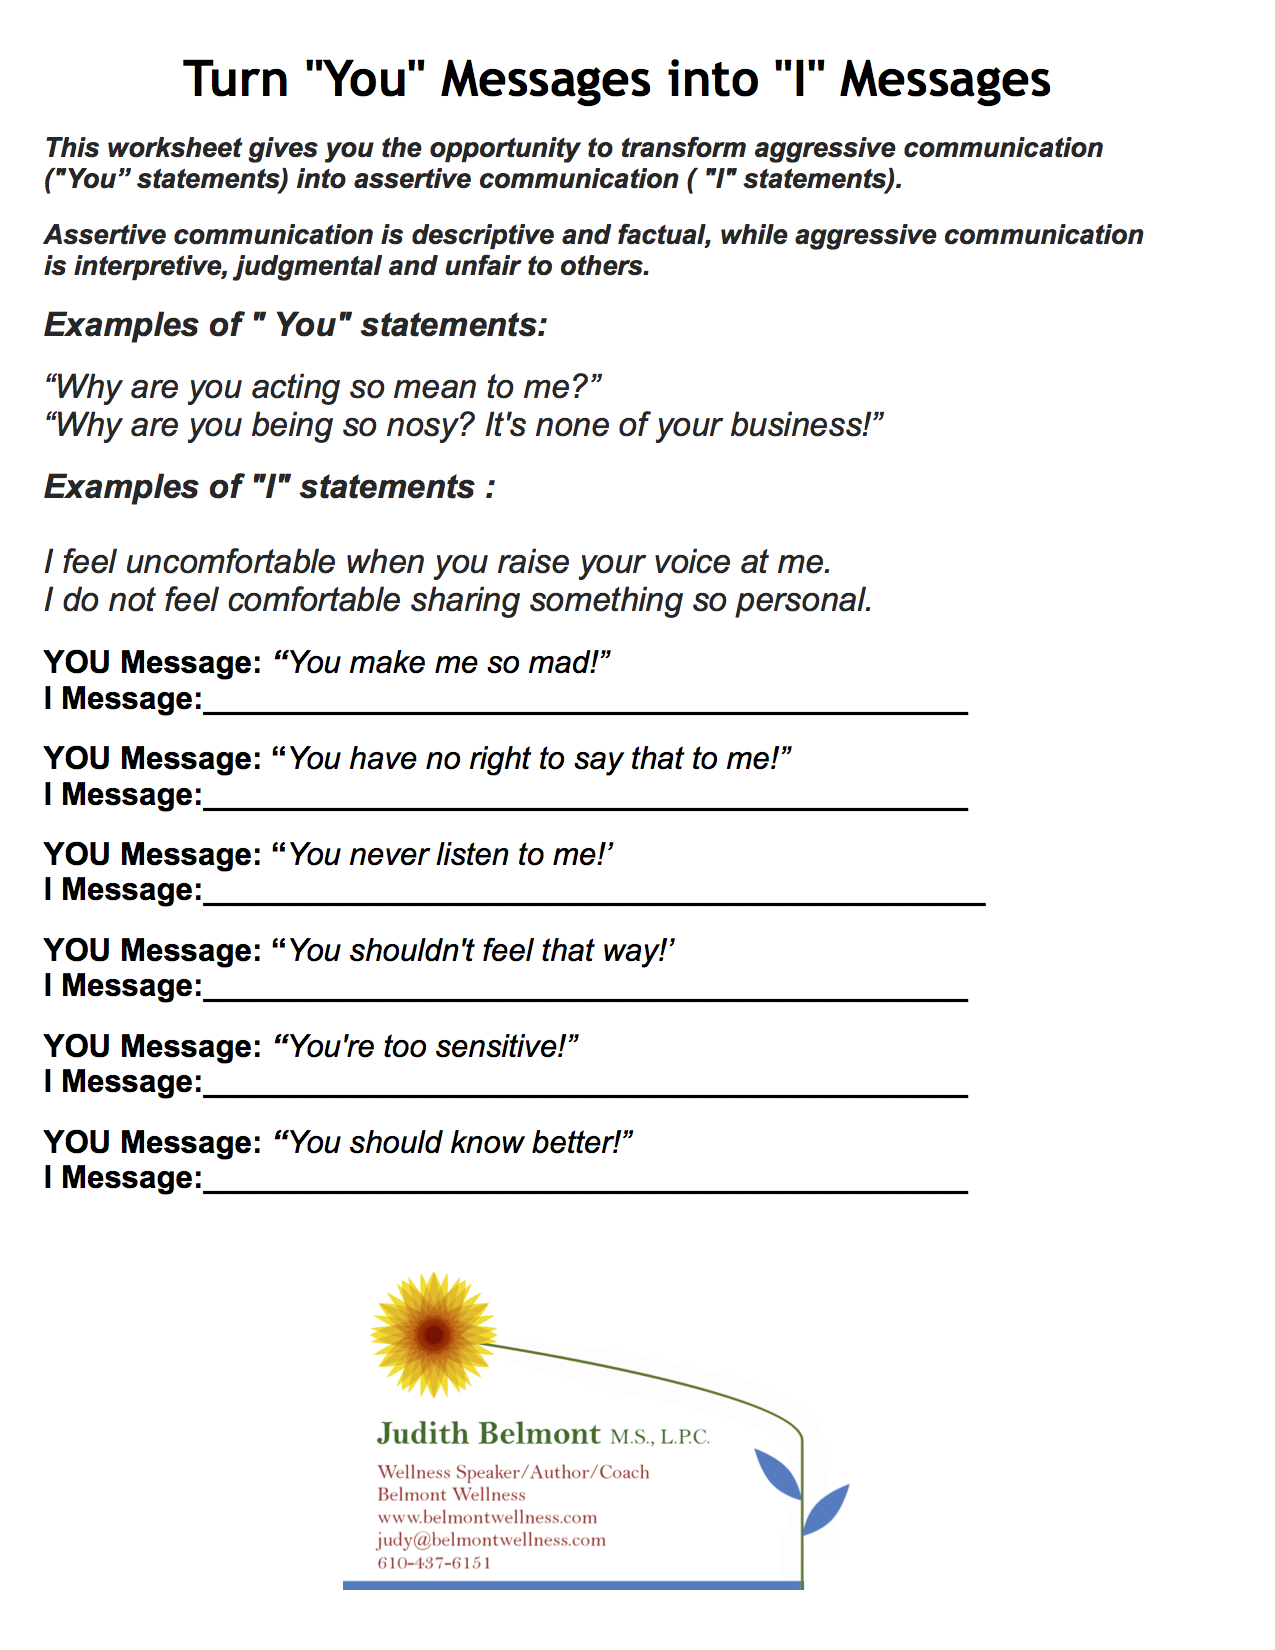 worksheet Passive Aggressive And Assertive Communication Worksheets turning you messages into i psychoeducational self help worksheetshandouts pinterest counselling an